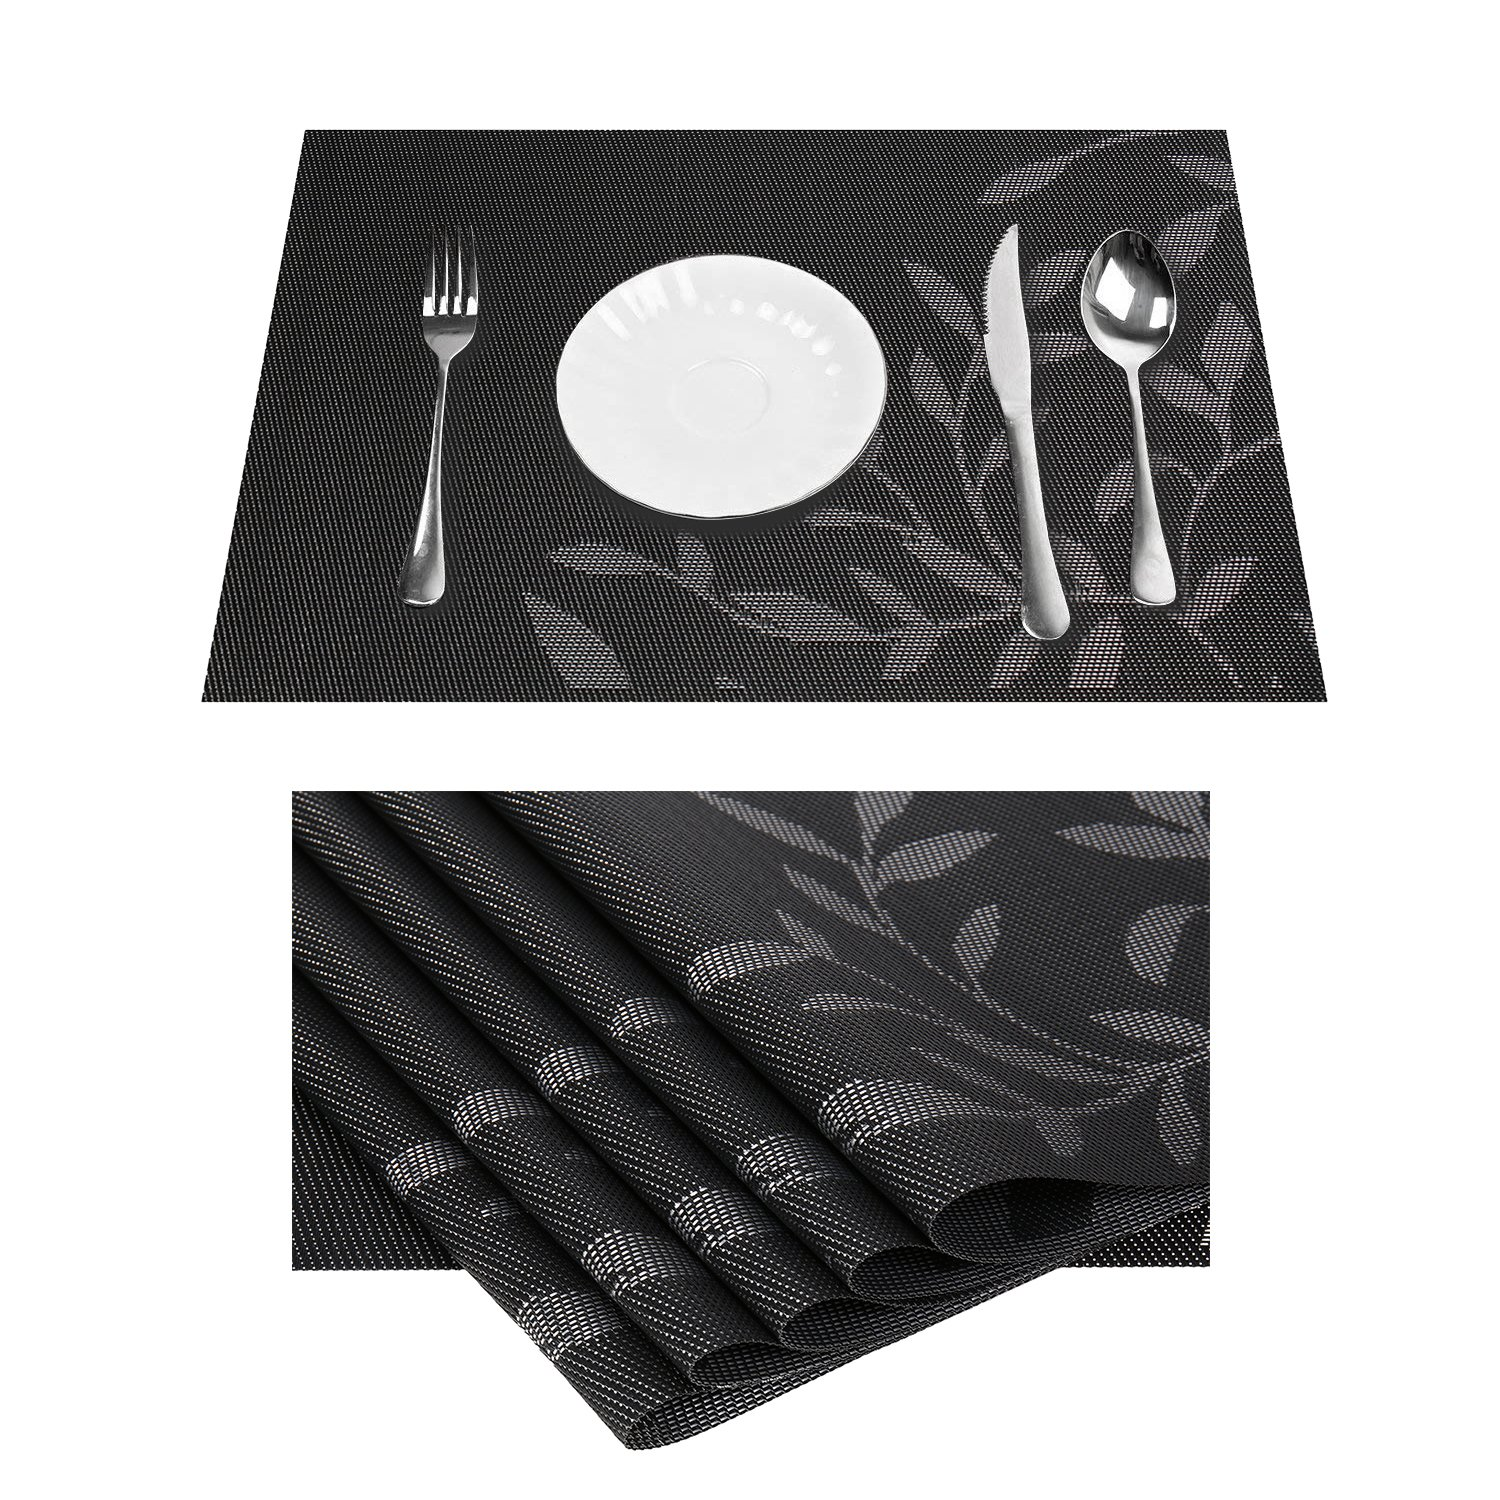 Vinyl Black Table Mats Placemats For Kitchen Table Mats